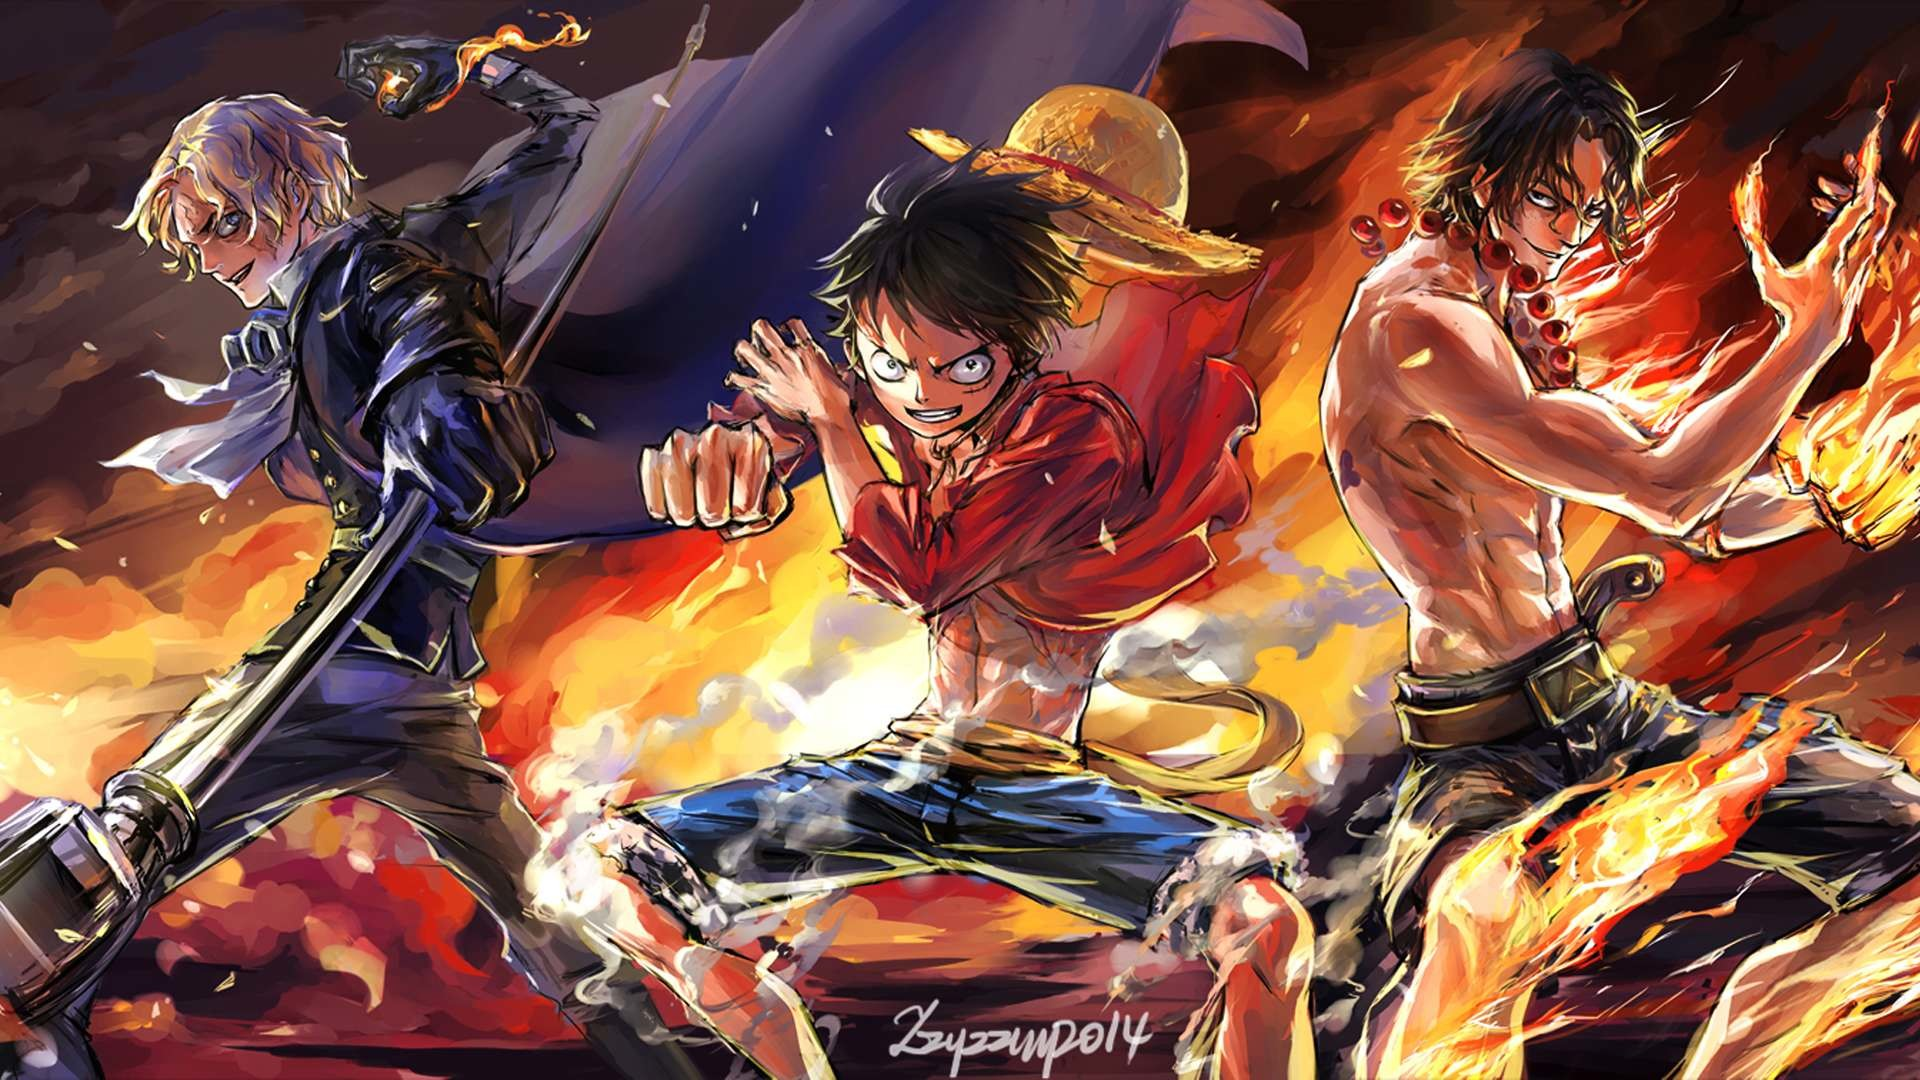 1920x1080 one piece desktop background hd